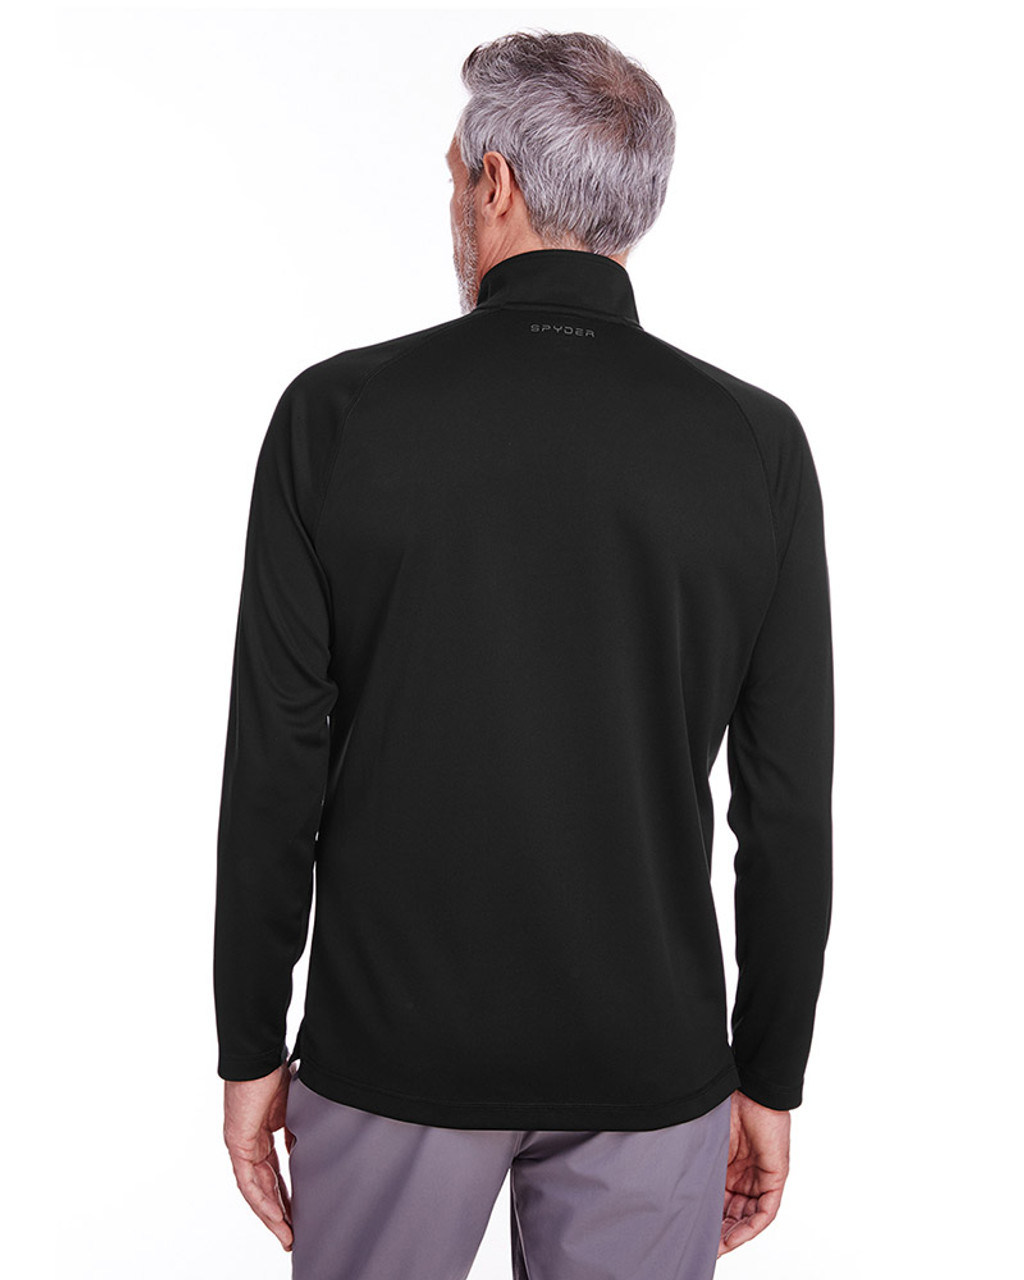 Black - back, S16797 Spyder Men's Freestyle Half-Zip Pullover Sweatshirt | Blankclothing.ca